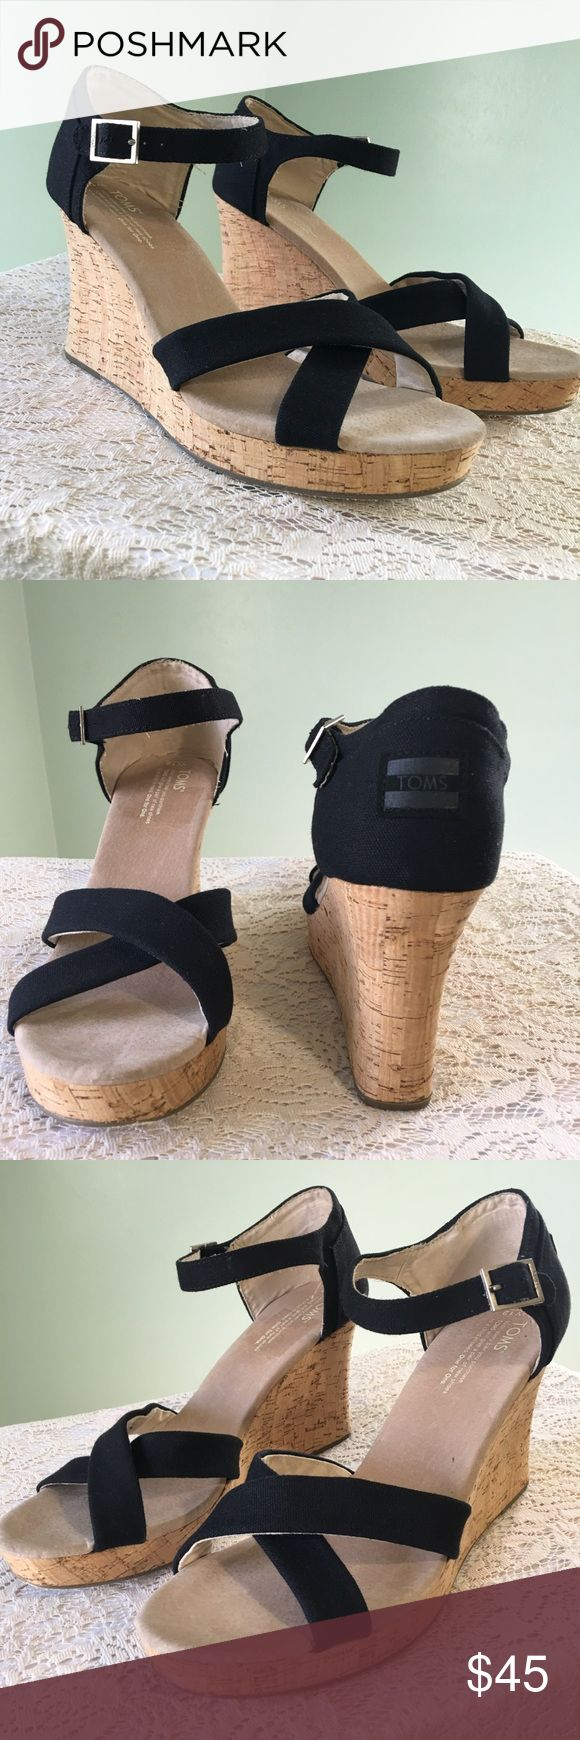 Toms Black Wedge Platform Sandals Size 12 TOMS women's classic black ankle ankle strap cork wedge sandals Condition: new without tags; (Has some writing on the bottom of right sole with silver sharpie) Size 12  Color: Black with cork wedge heel Ankle strap closure Perfect for dresses or jeans. Toms Shoes Sandals